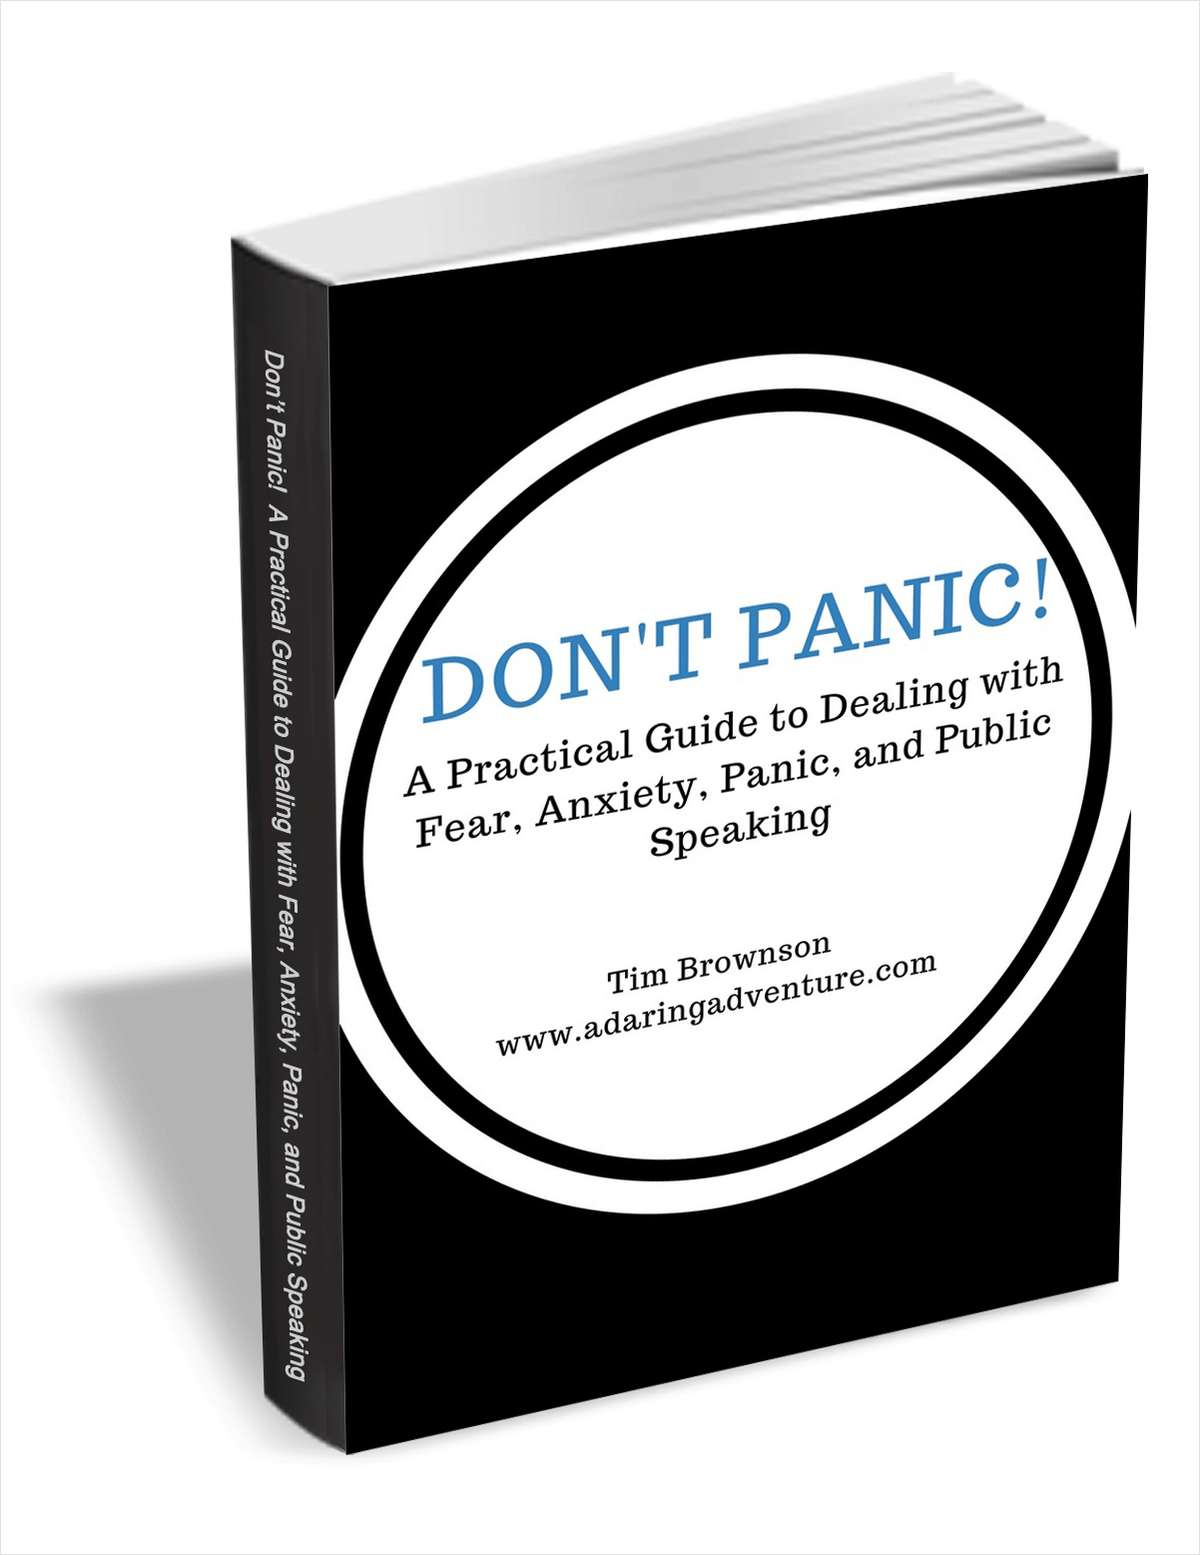 Don't Panic! A Practical Guide to Dealing with Fear, Anxiety, Panic, and Public Speaking